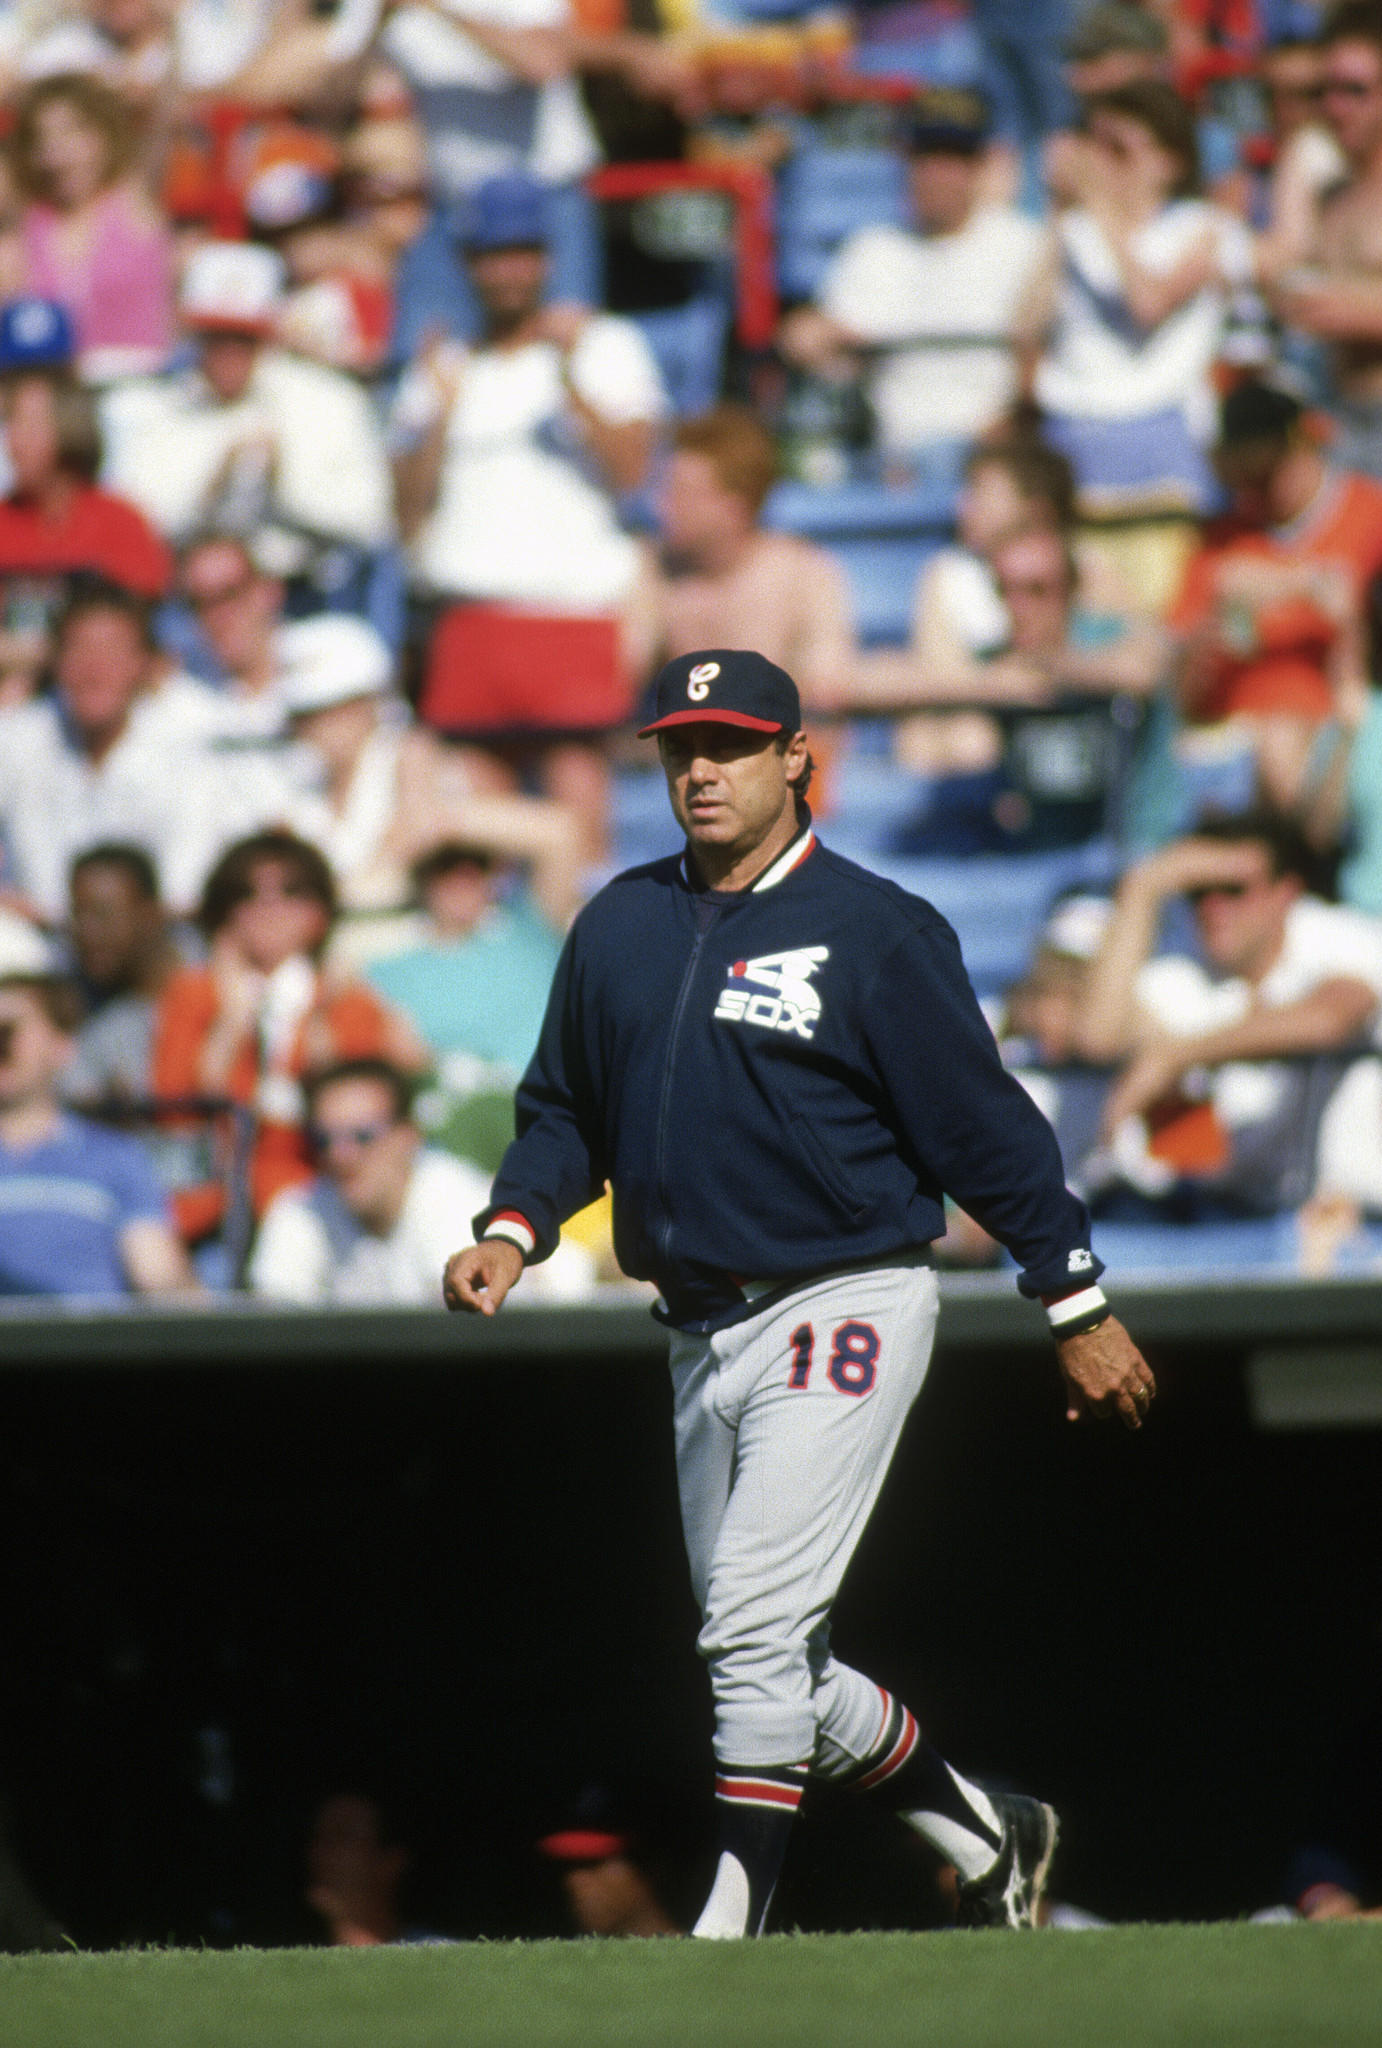 CIRCA 1986: Manager Jim Fregosi (18) of the Chicago White Sox walks out to the mound to make a pitching change during a Major League Baseball game against the Baltimore Orioles at Memorial Stadium in Baltimore, Maryland. Fregosi managed the White Sox from 1986-88.